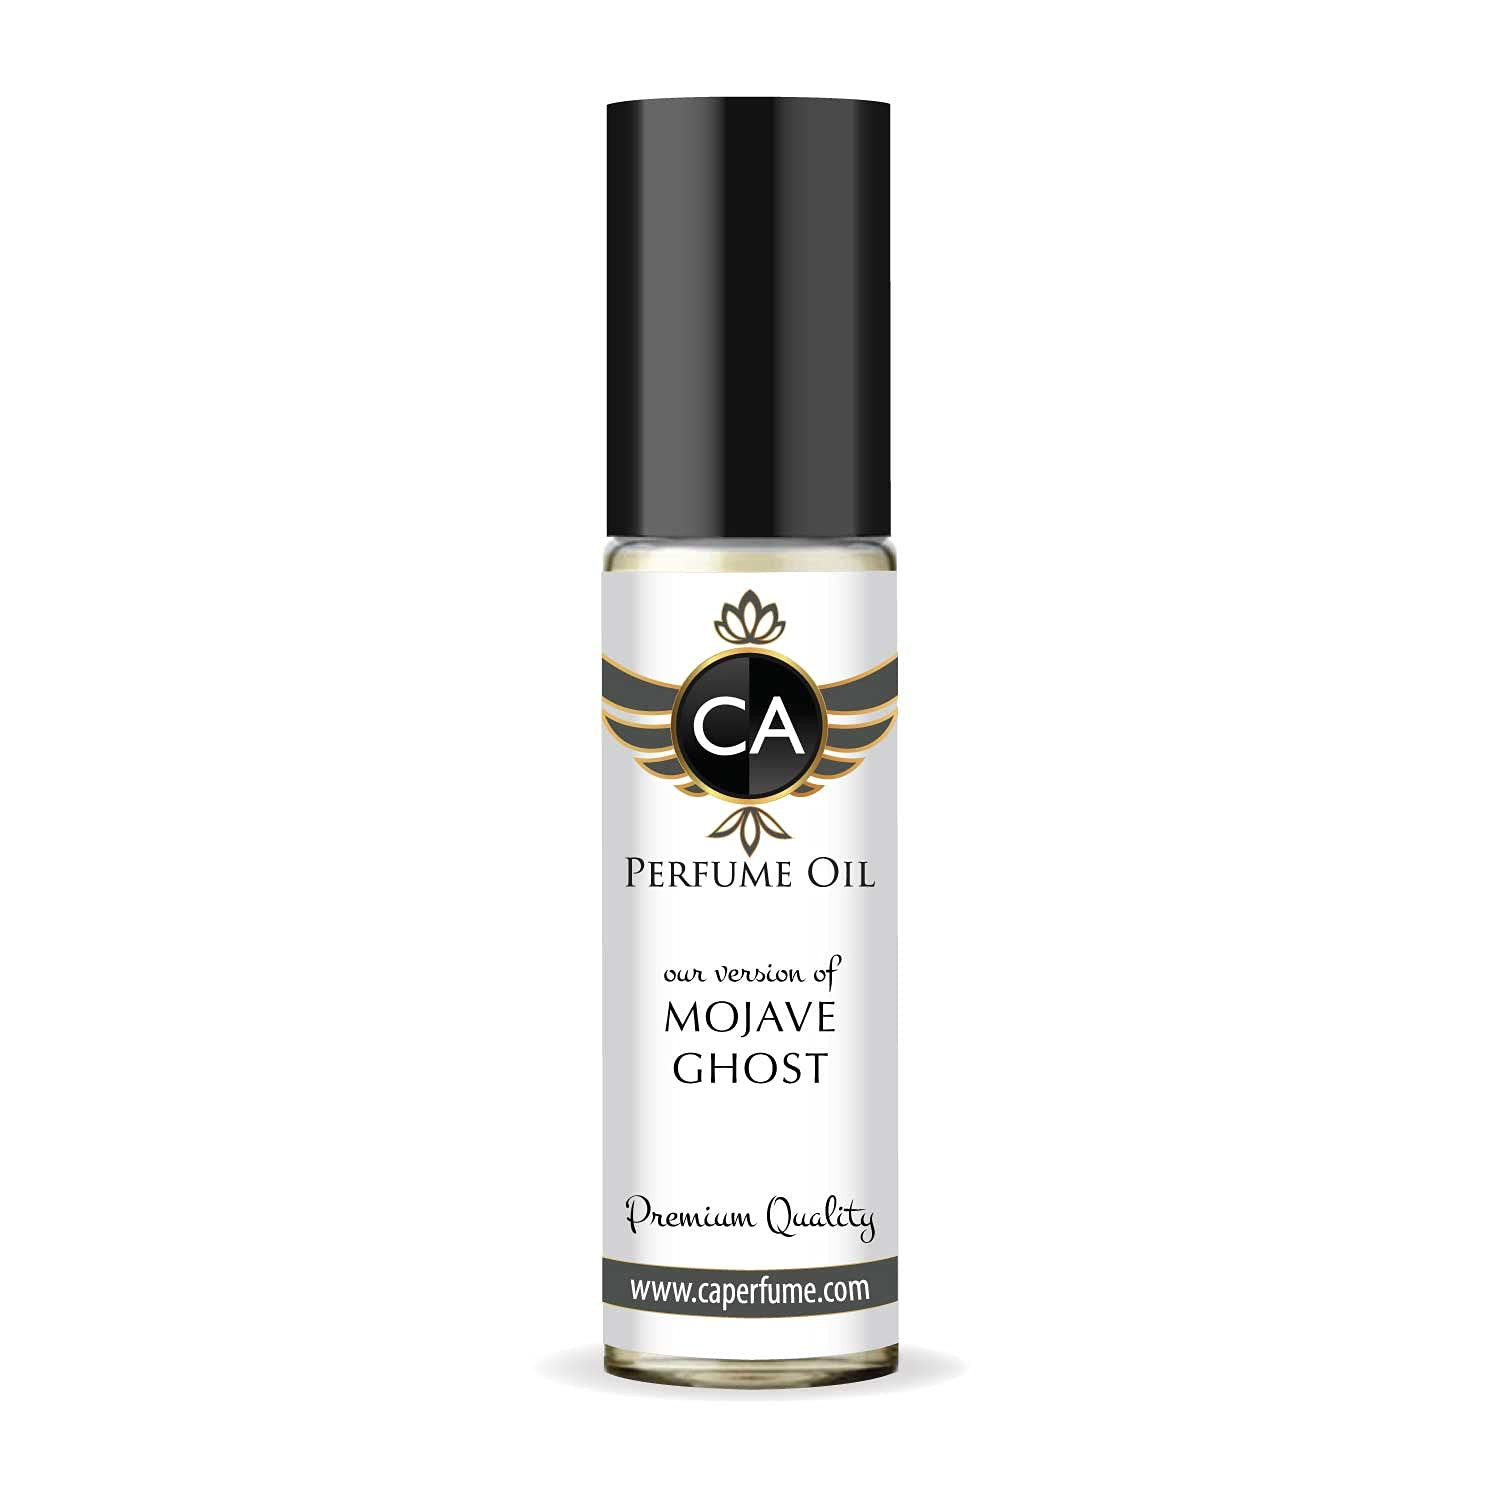 CA Perfume Impression of Mojave Ghost For Max 41% OFF Fragrance Men Women Max 84% OFF